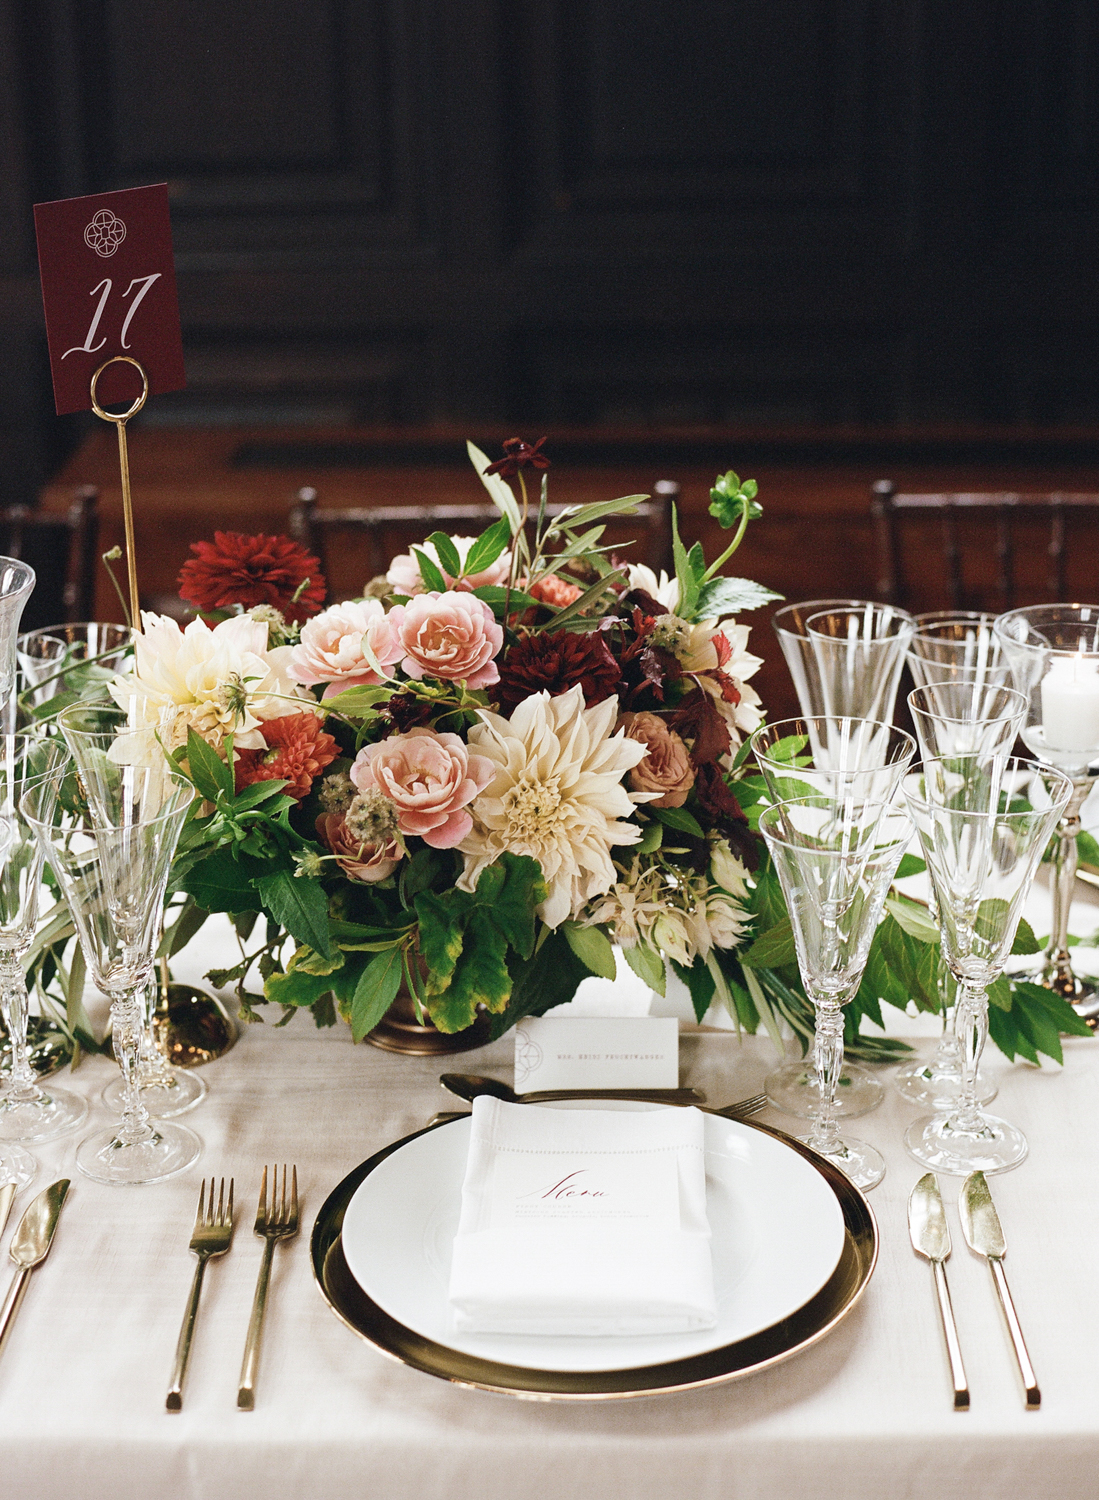 Old World NYC Wedding at the Highline Hotel - Flowers by Denise Fasanello Flowers - Photo by Heather Waraska 18.jpg